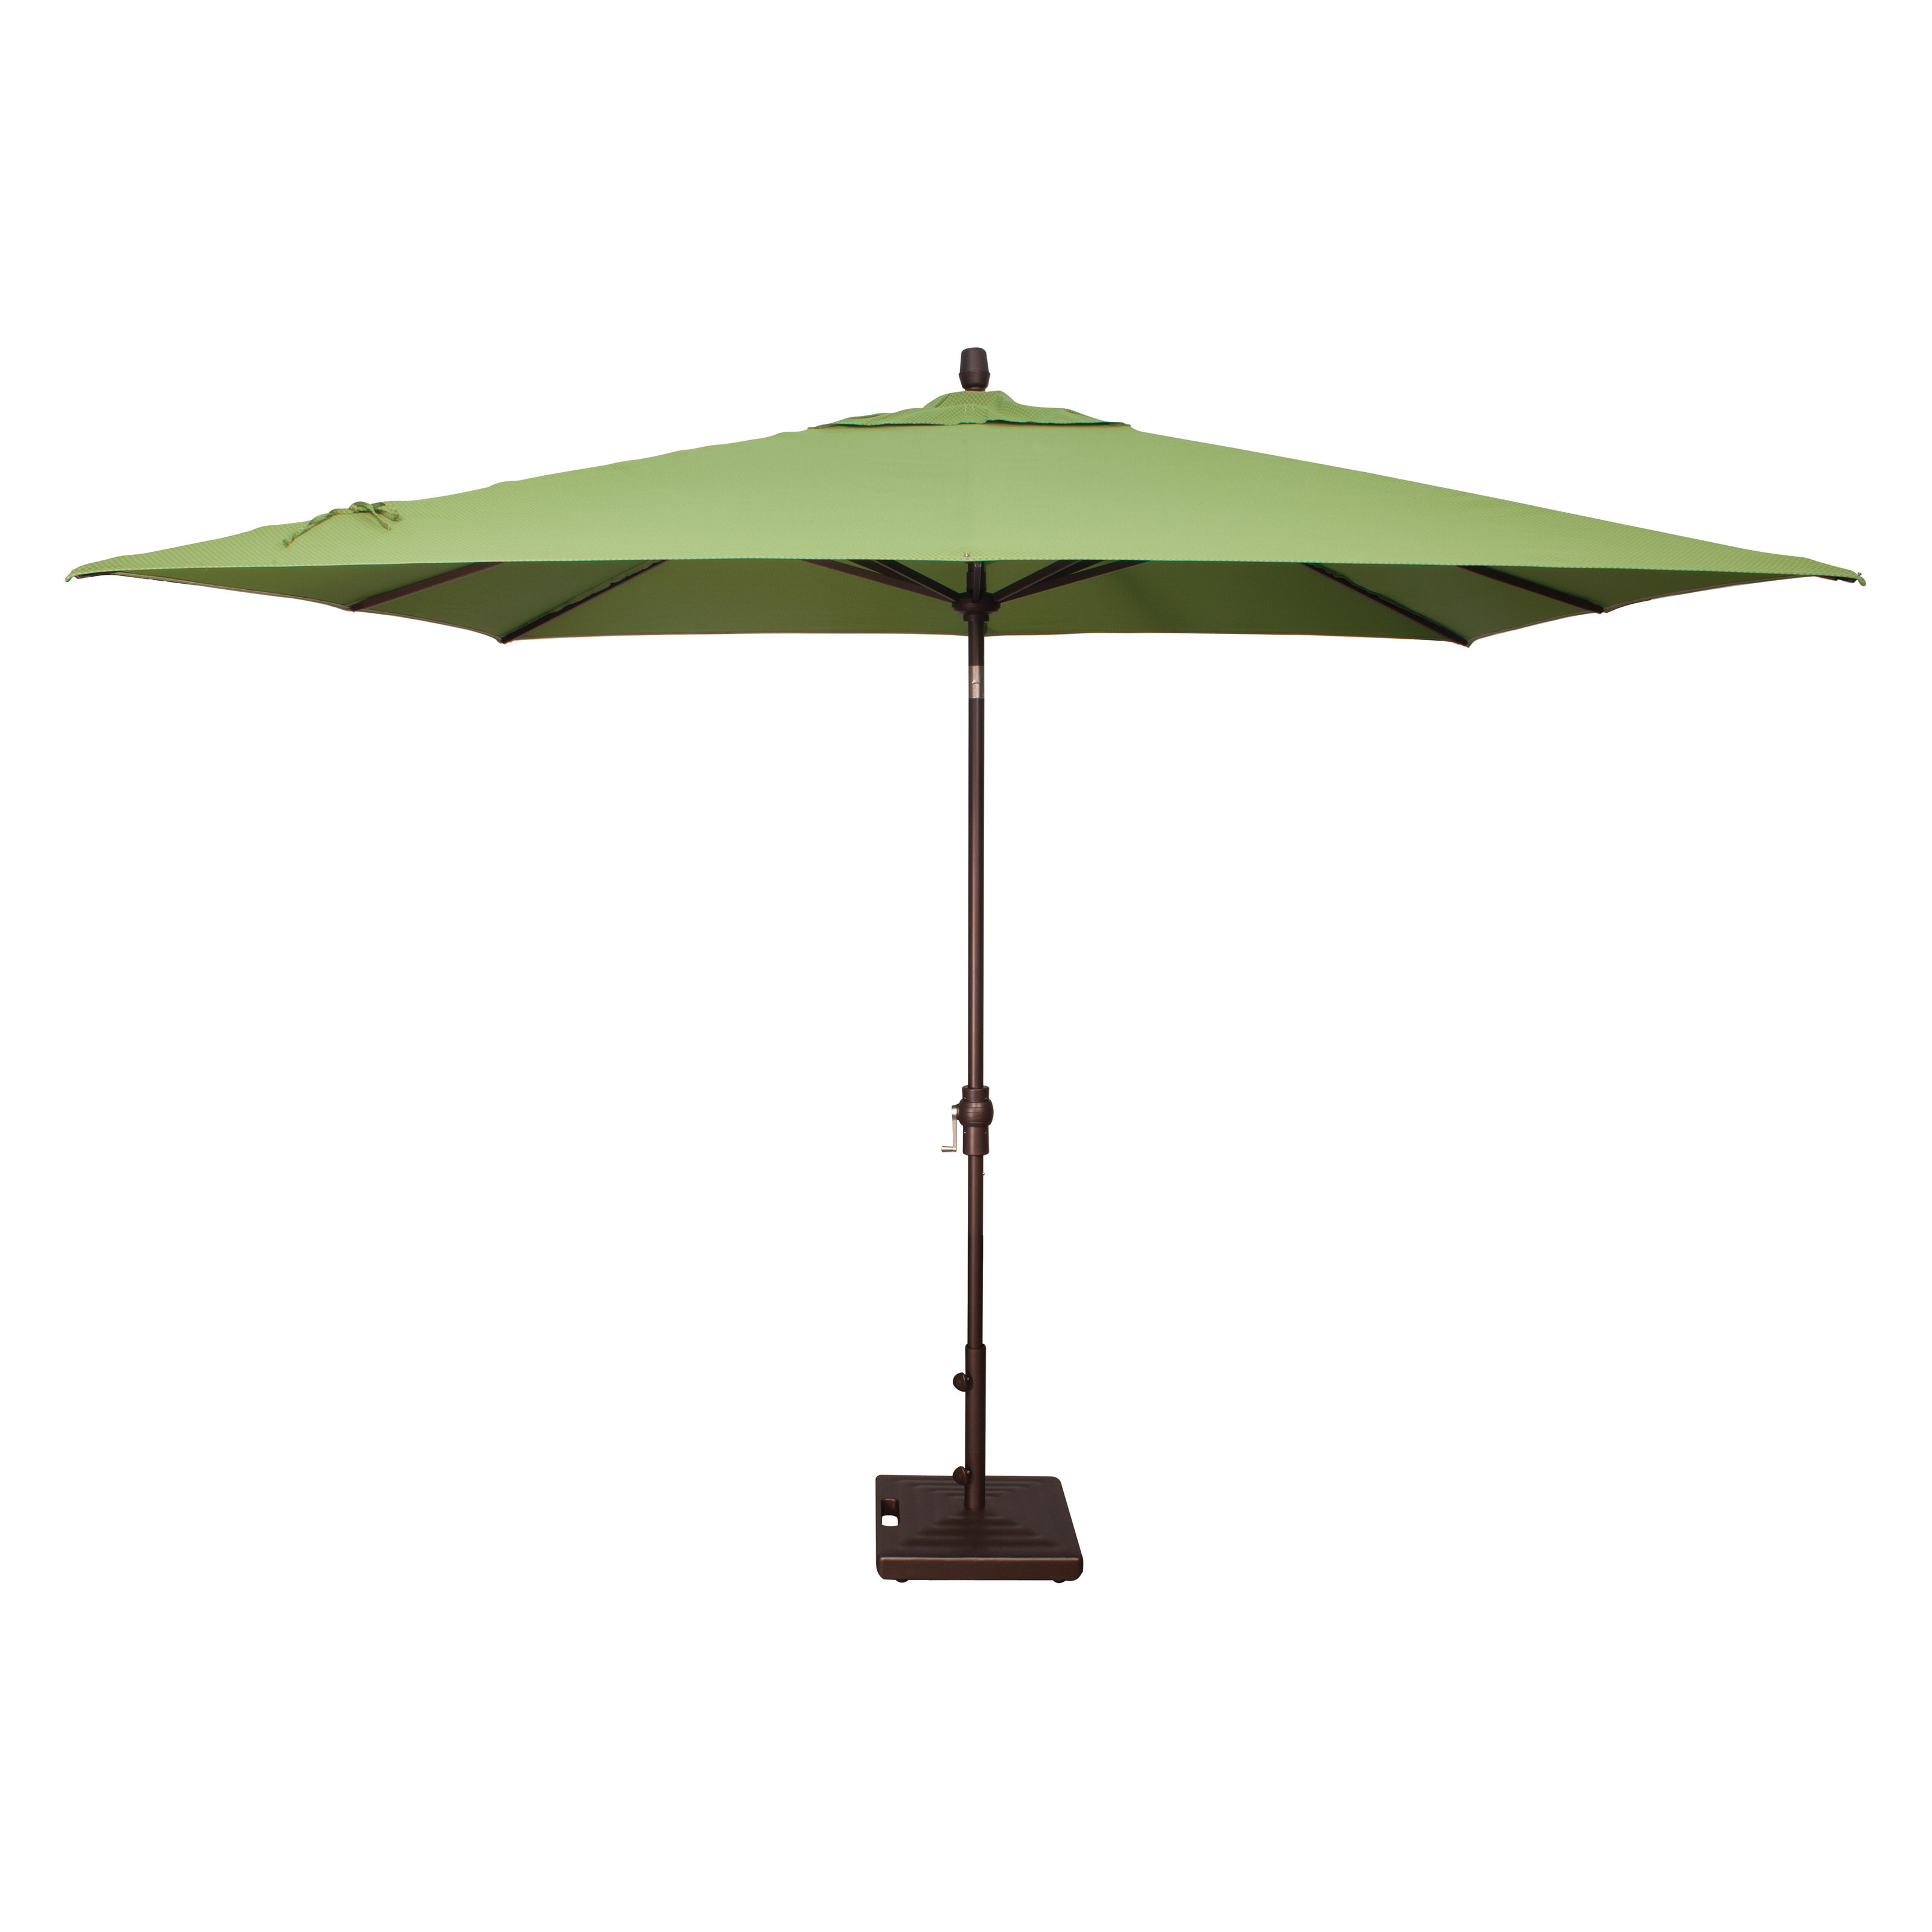 best for costco garden furniture ideas idea offset treasures patio market fantastic umbrella world